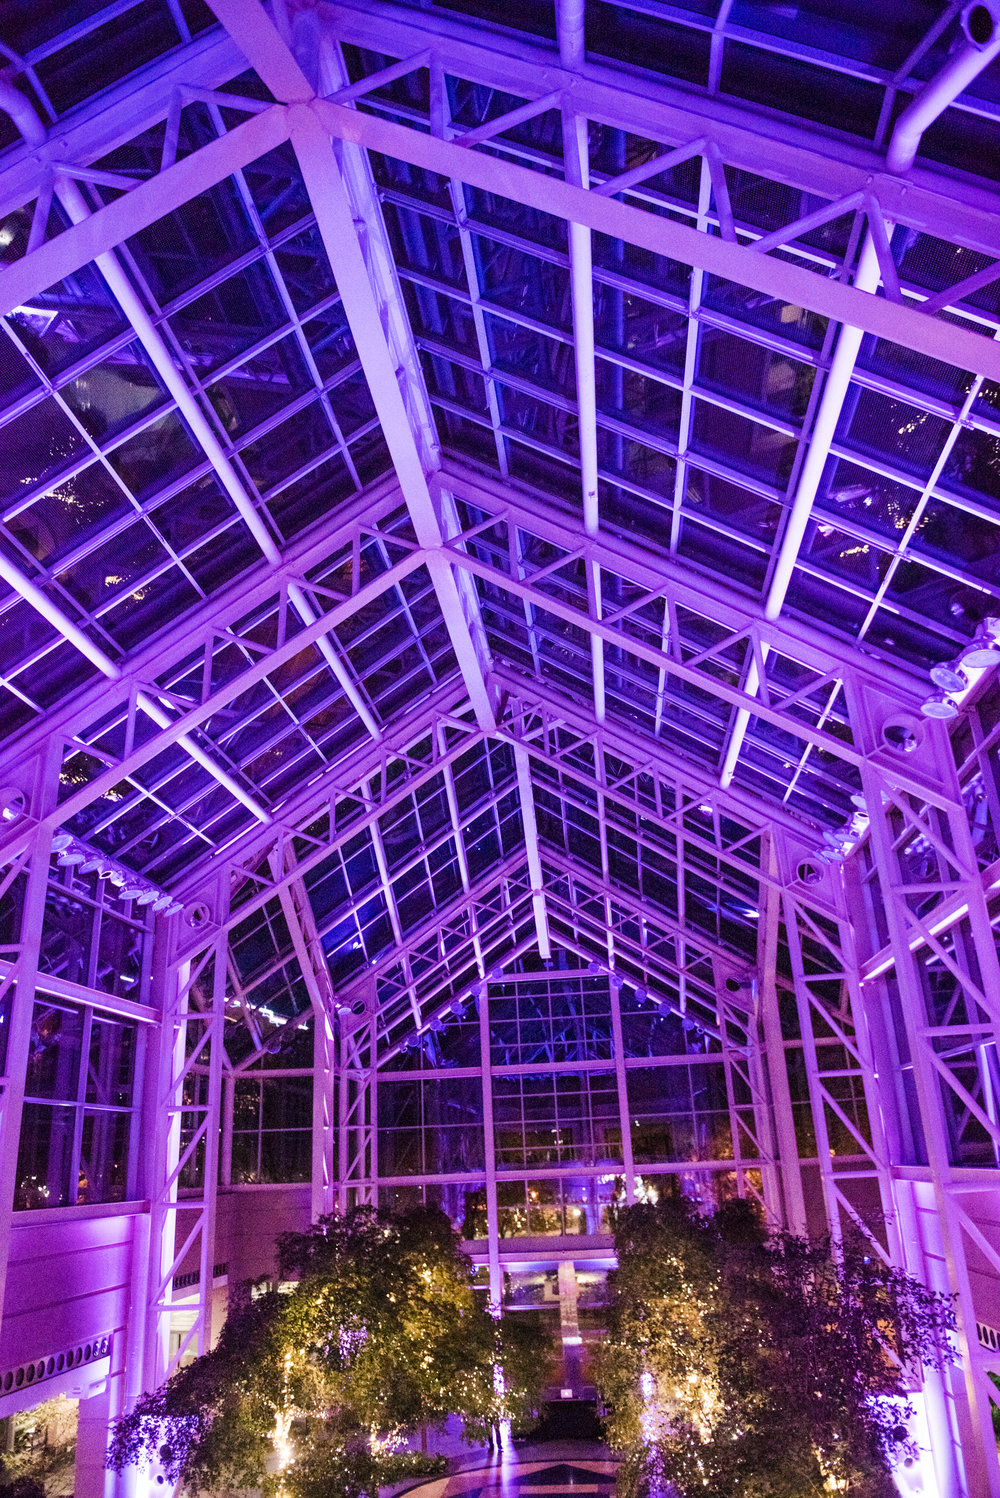 Wintergarden_by_Monroes_Rochester_Wedding_JILL_STUDIO_Rochester_NY_Photographer_190538.jpg